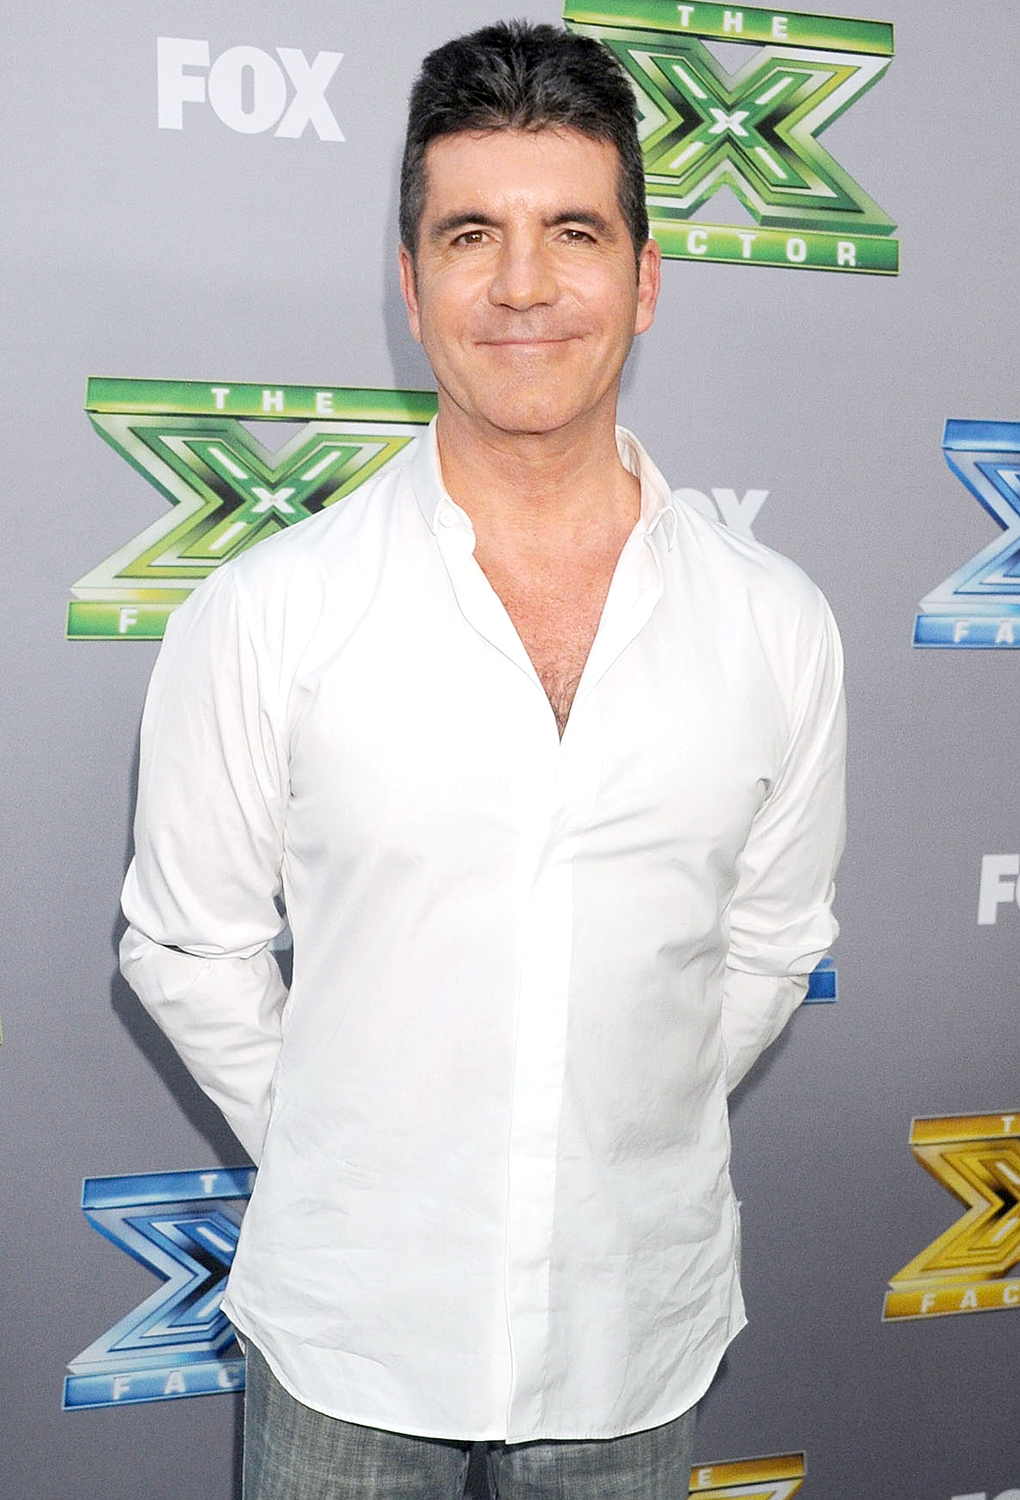 The X Factor creator used his production company, Syco Entertainment, to produce the smash competition series. Both Cowell and Sony Music Entertainment own 50 percent of the company, which later produced another successful franchise: America's Got Talent .